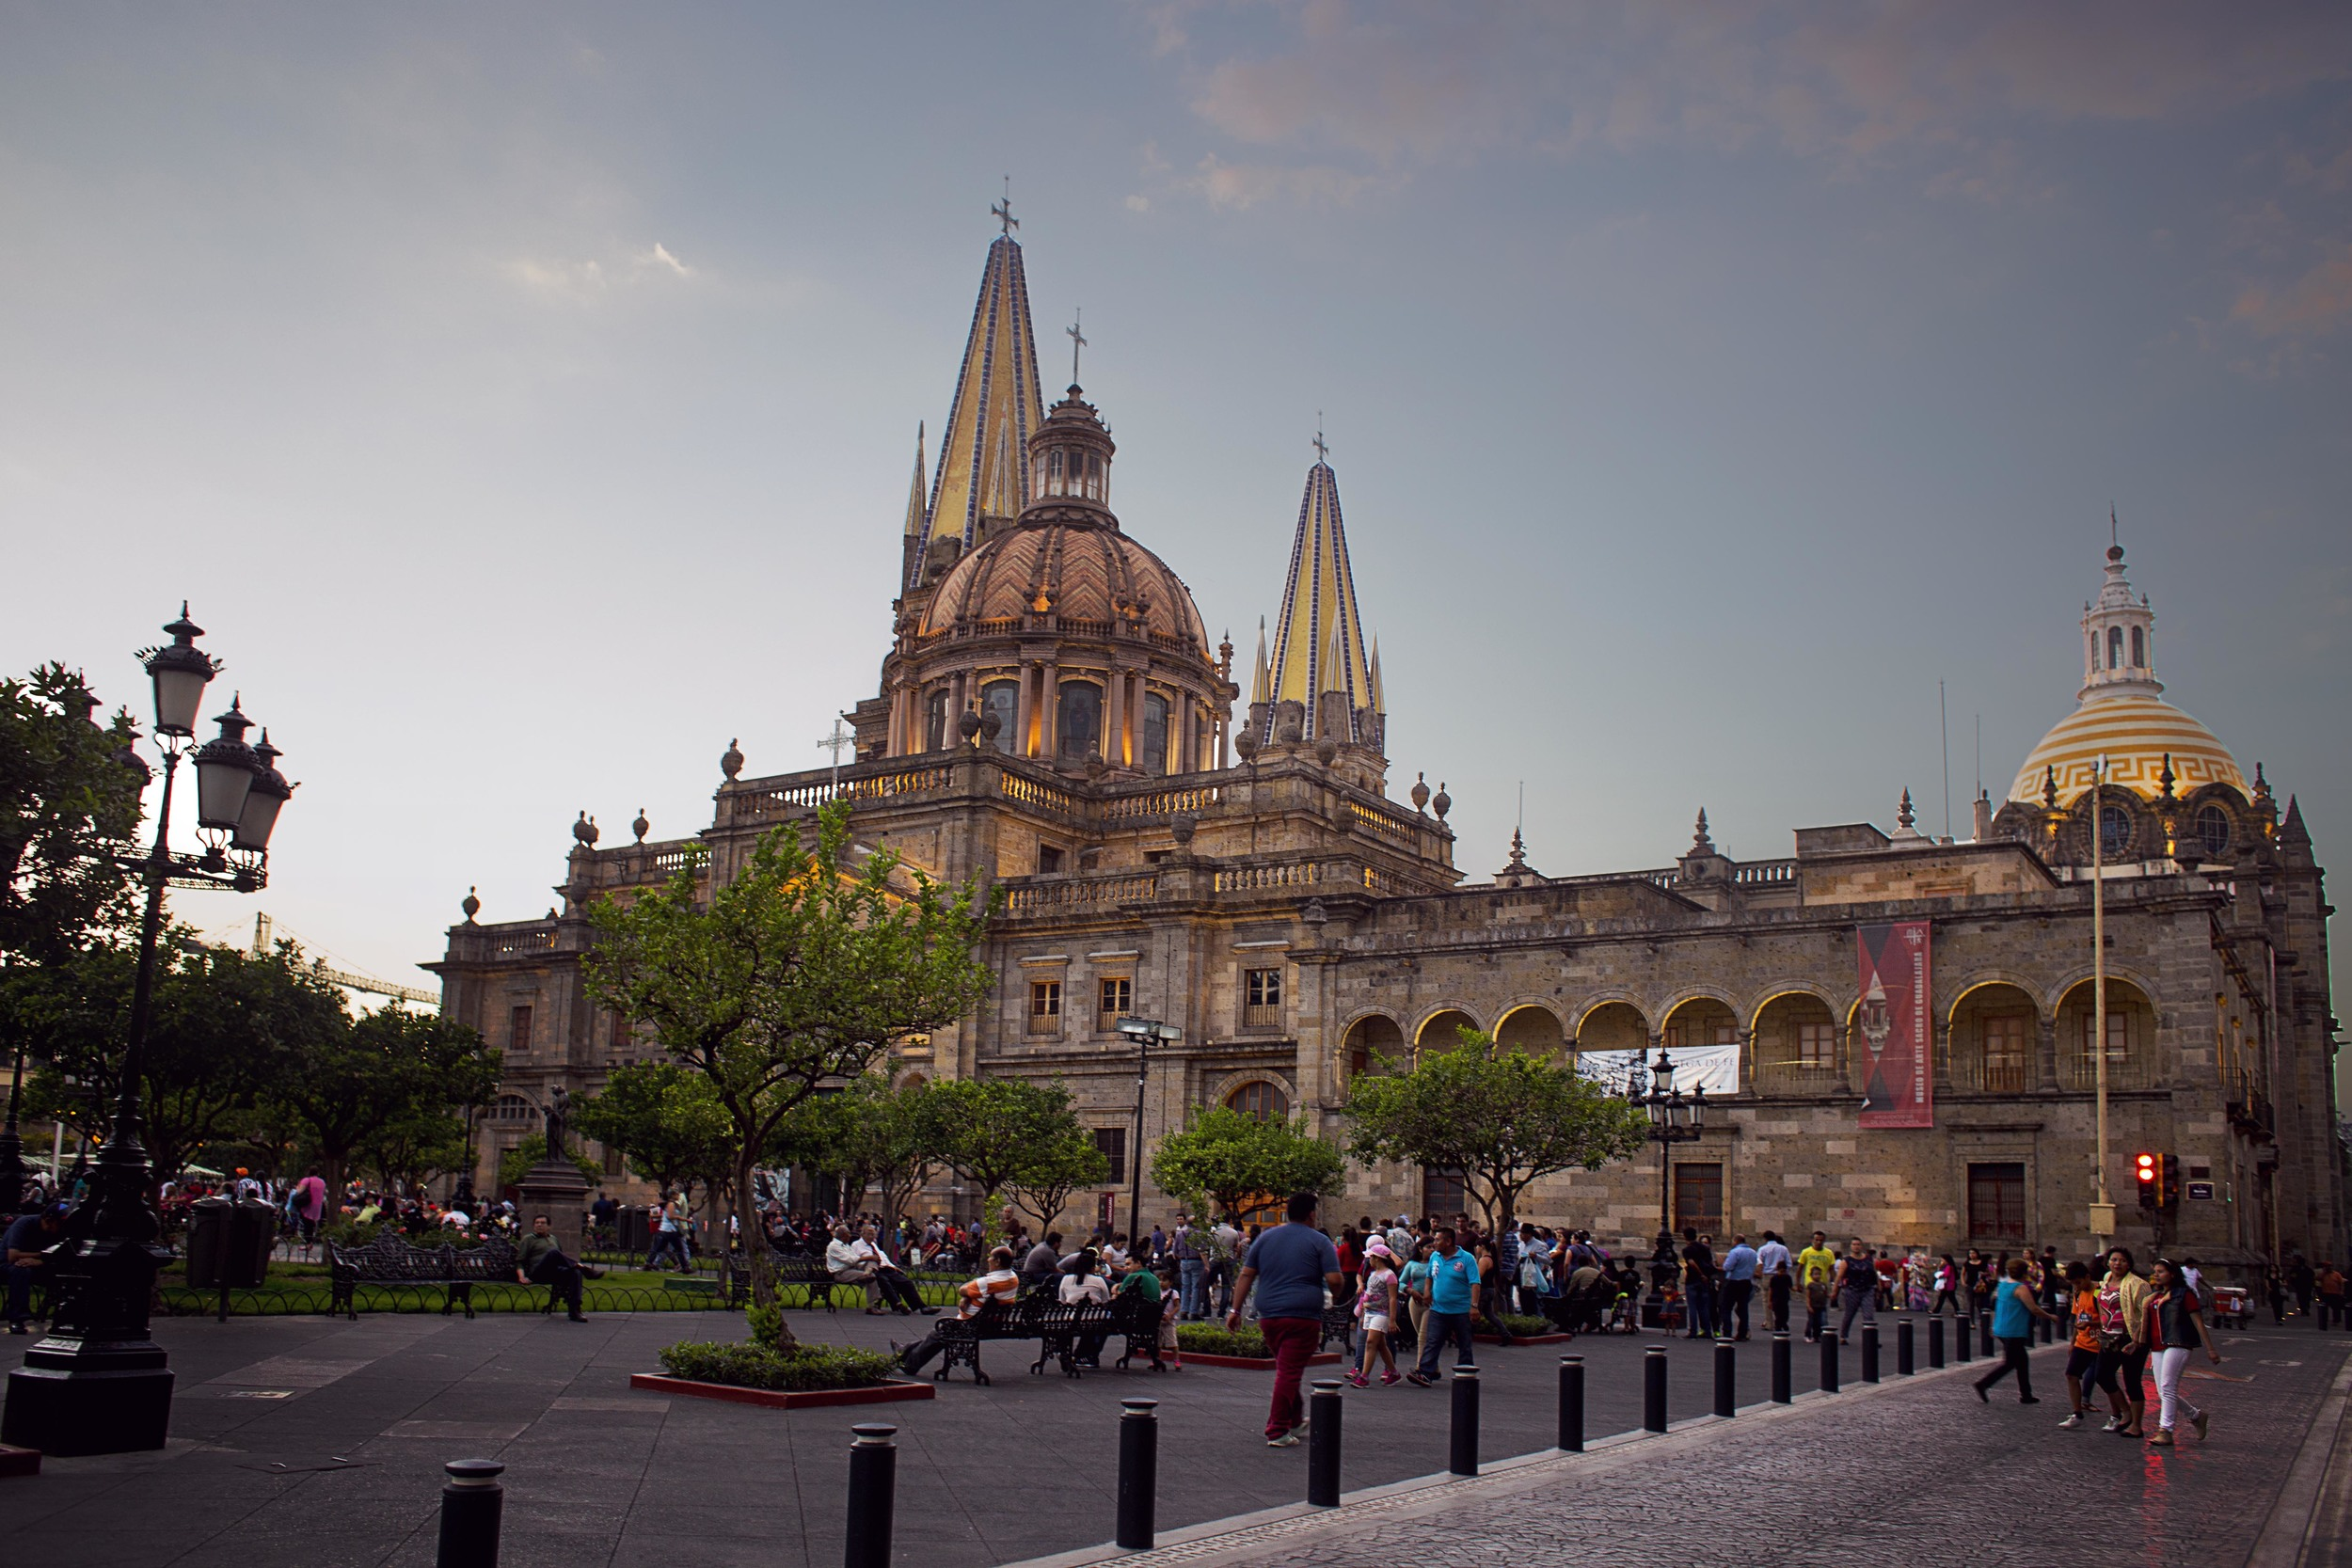 Day 60 - Guadalajara, Jalisco, Mexico    The Cathedral of Guadalajara, built in 1568.  In front of it is a plaza which gets filled with people every night with people of all ages and social classes. You can find street performers, street vendors selling from freshly cut pineapple with chili or sans chili, and toys for the kids to play with as the parents sit nearby.